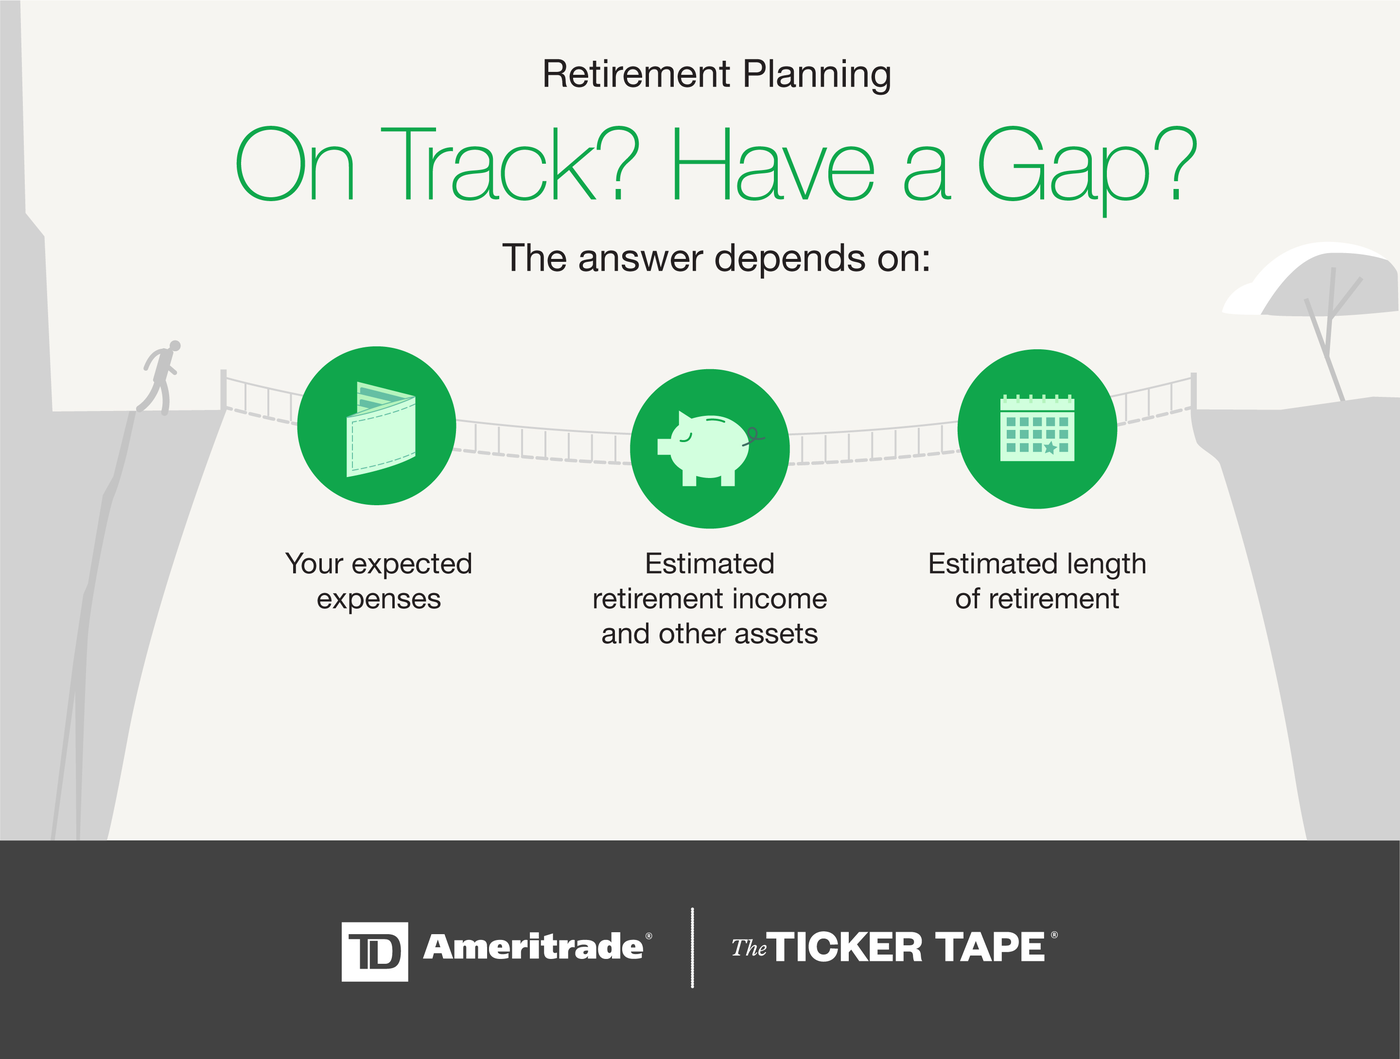 On track with retirement planning? Identify if you have a gap.